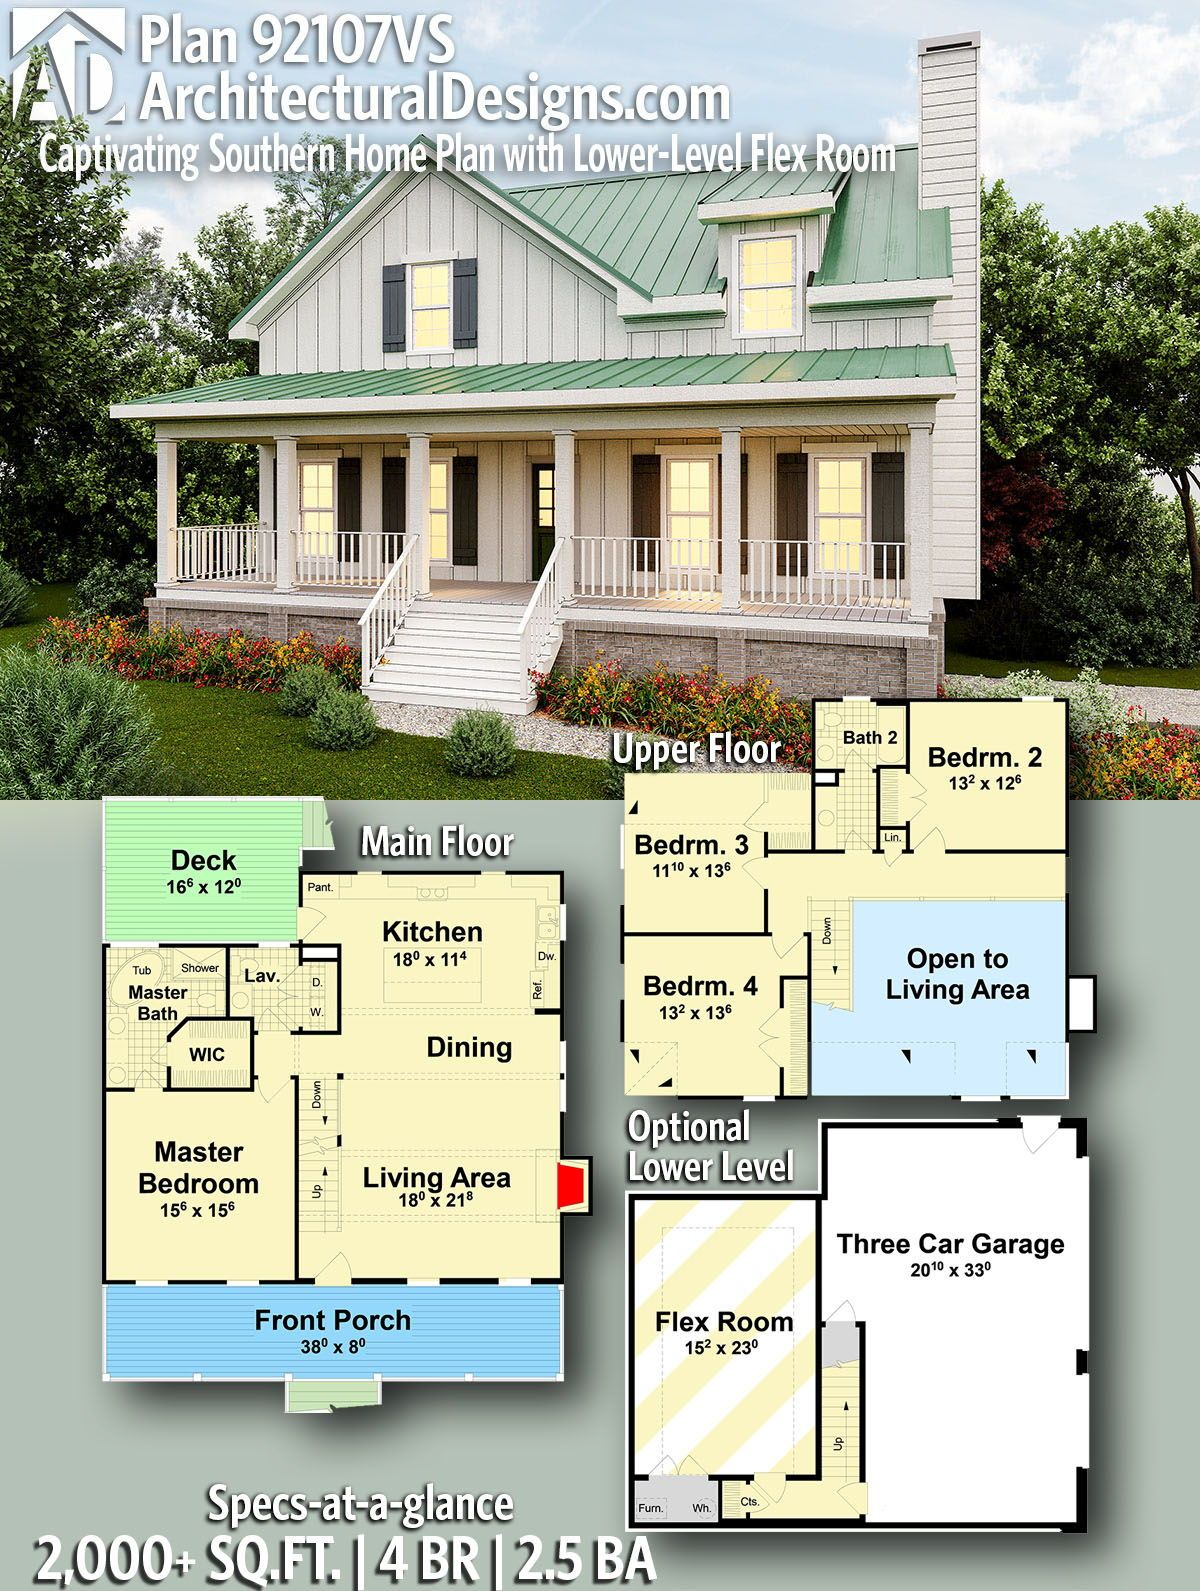 Plan 92107vs Captivating Southern Home Plan With Lower Level Flex Room Southern House Plans Vacation House Plans House Plans Farmhouse